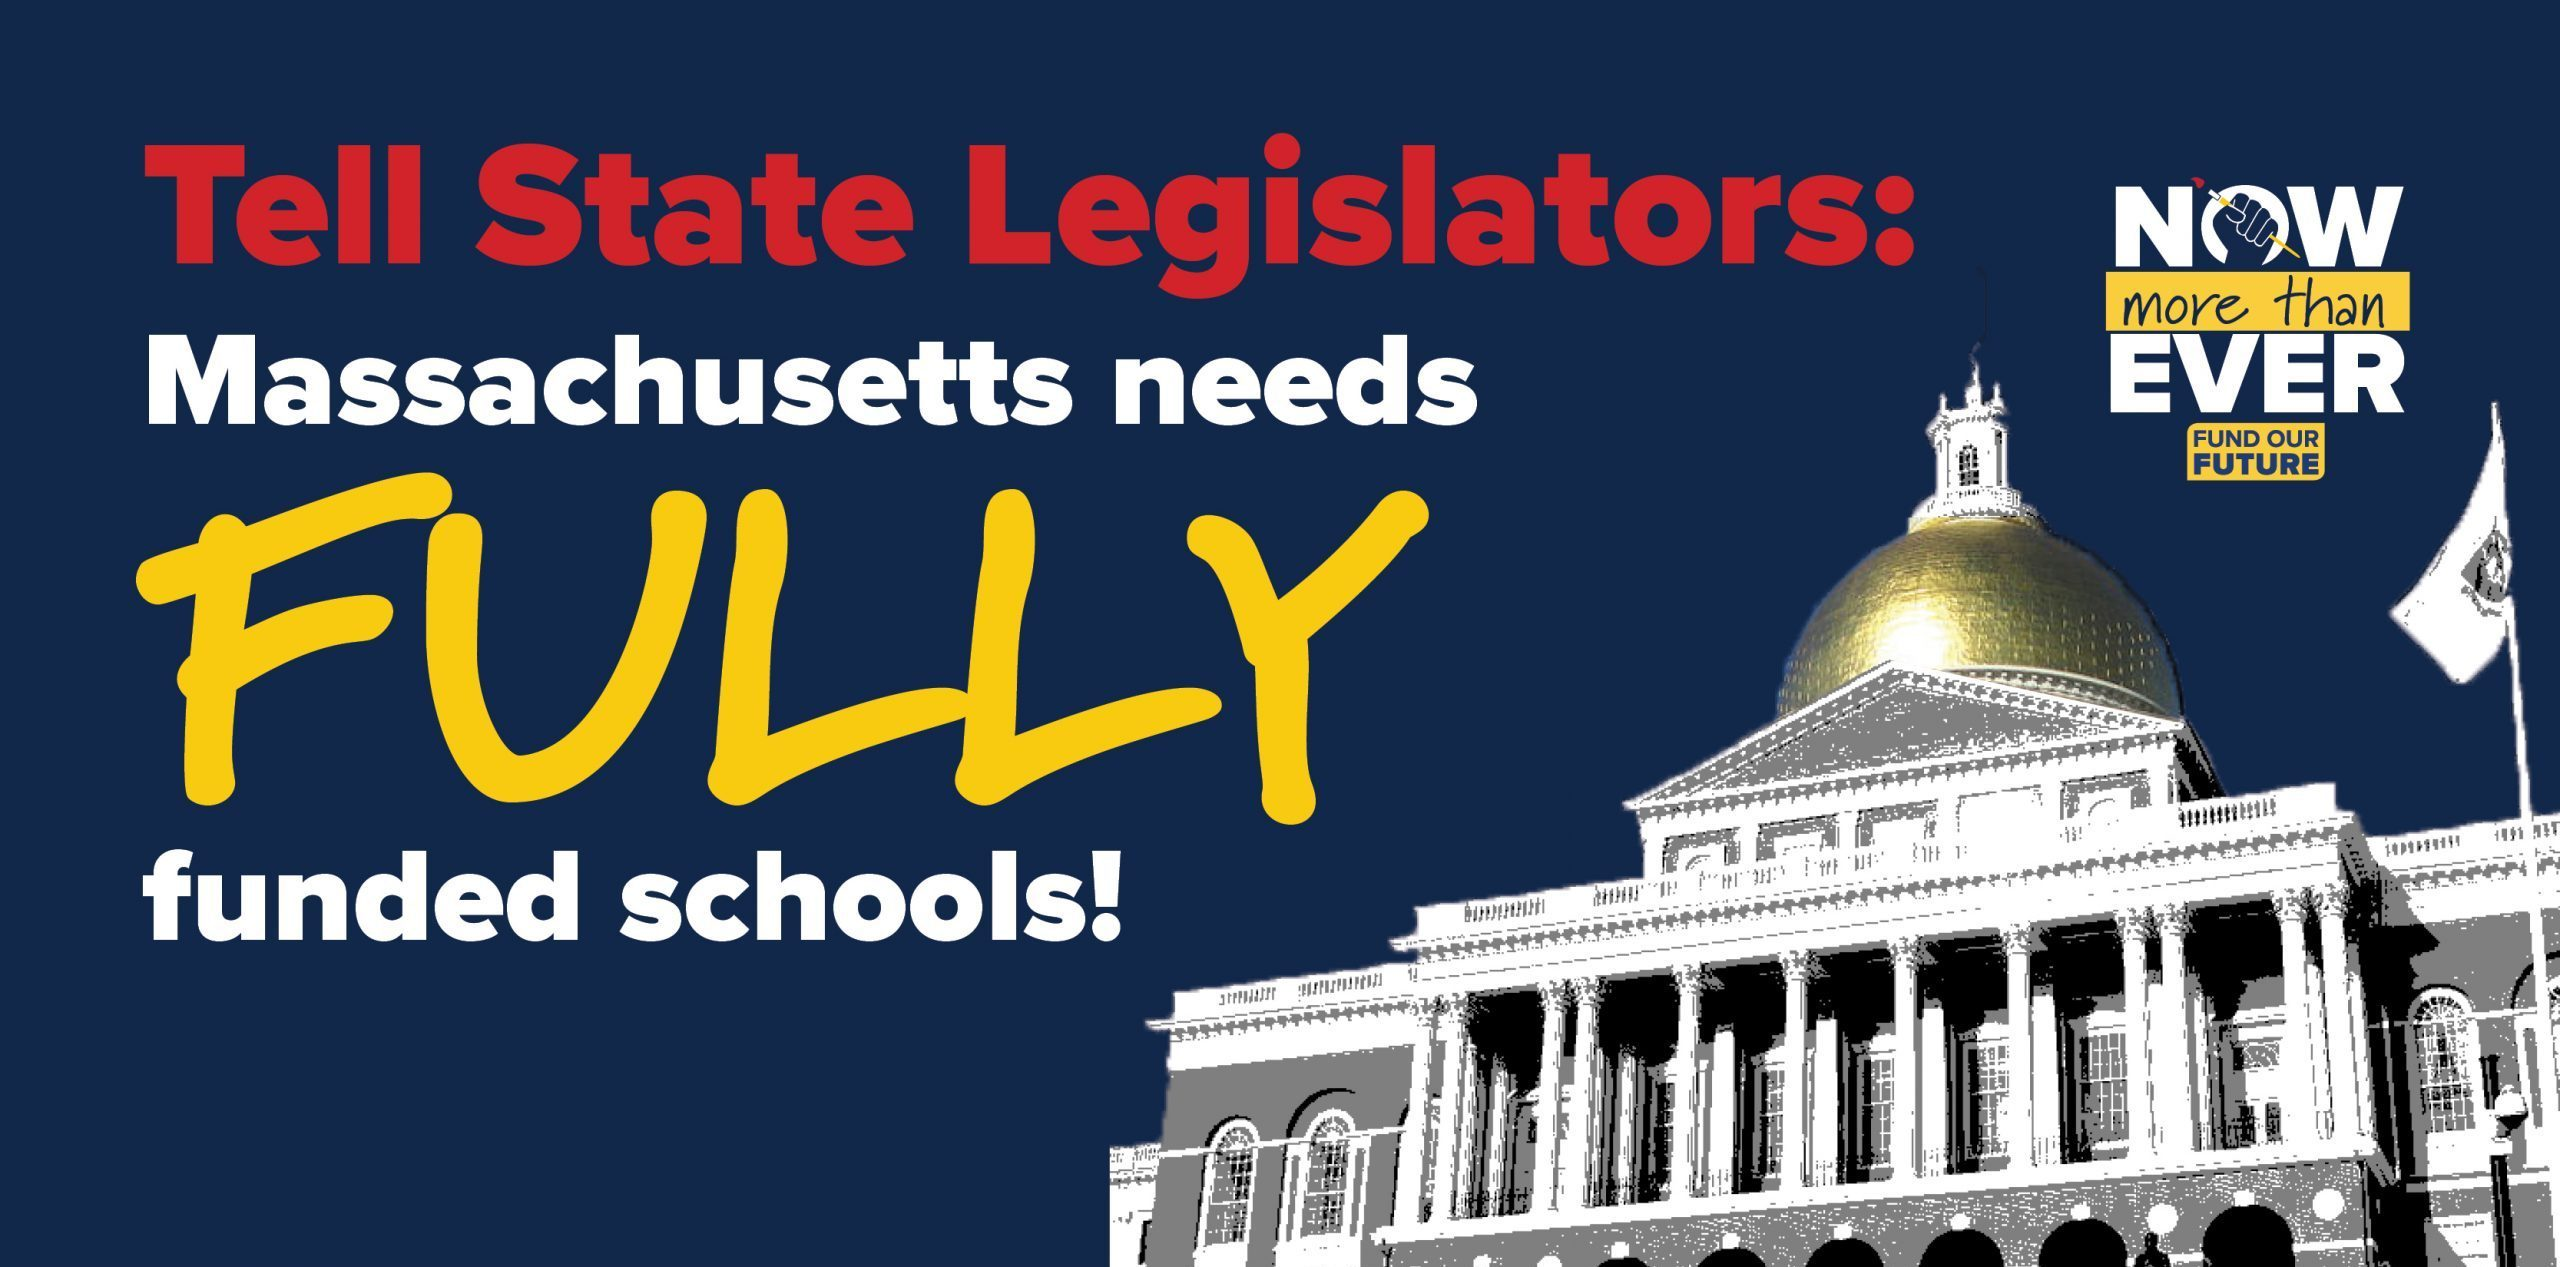 Tell State Legislators: Massachusetts needs FULLY funded schools!